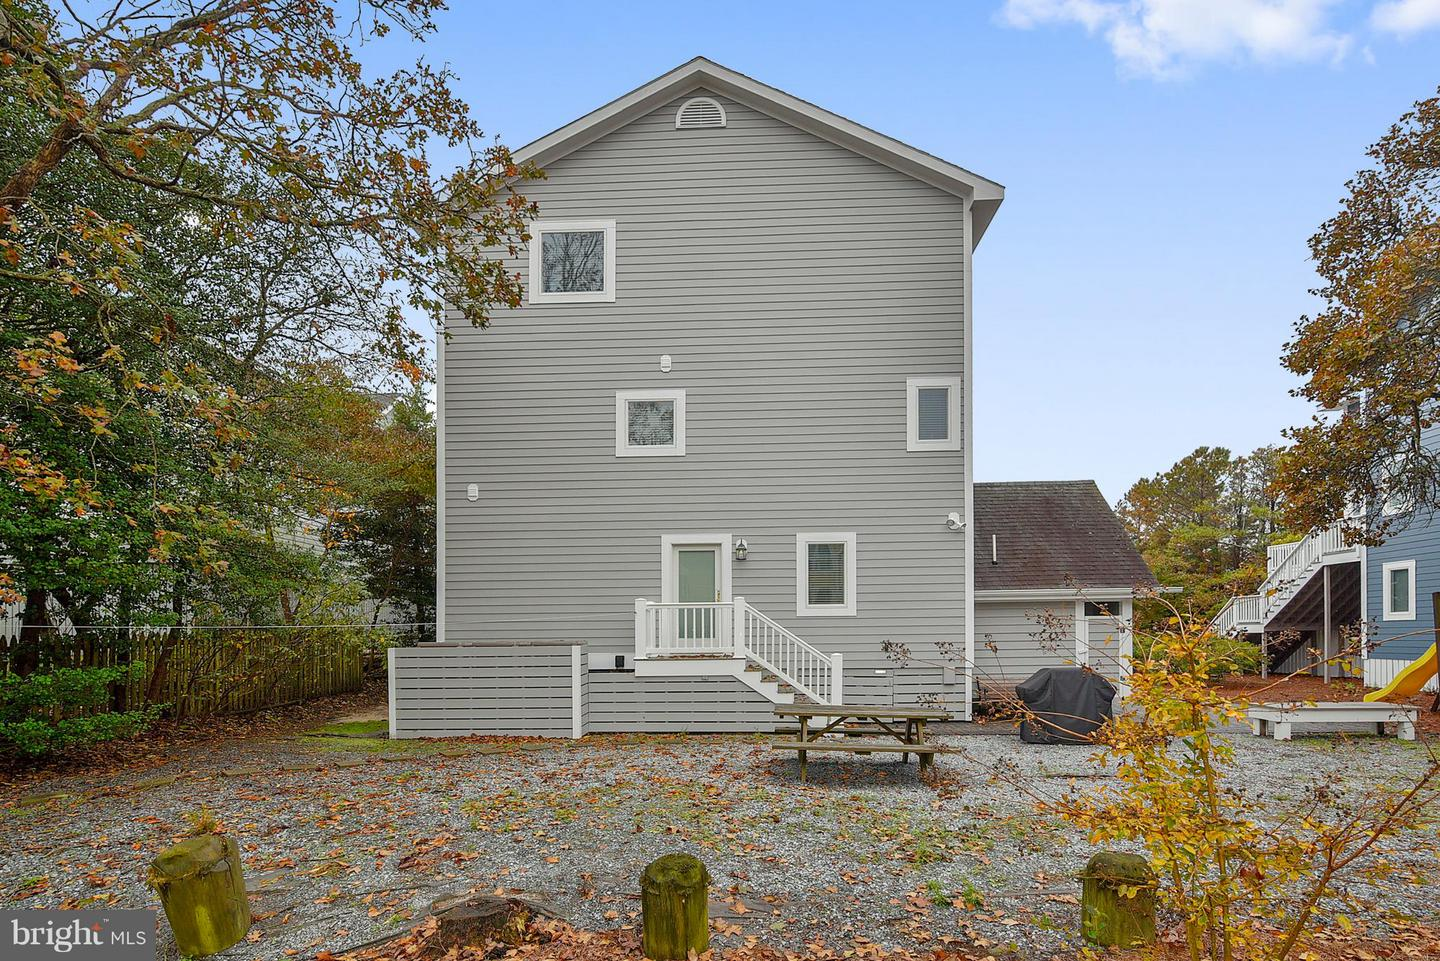 1002344128-300986985407-2018-11-07-14-16-58 39634 Seatrout Cir | North Bethany, DE Real Estate For Sale | MLS# 1002344128  - 1st Choice Properties